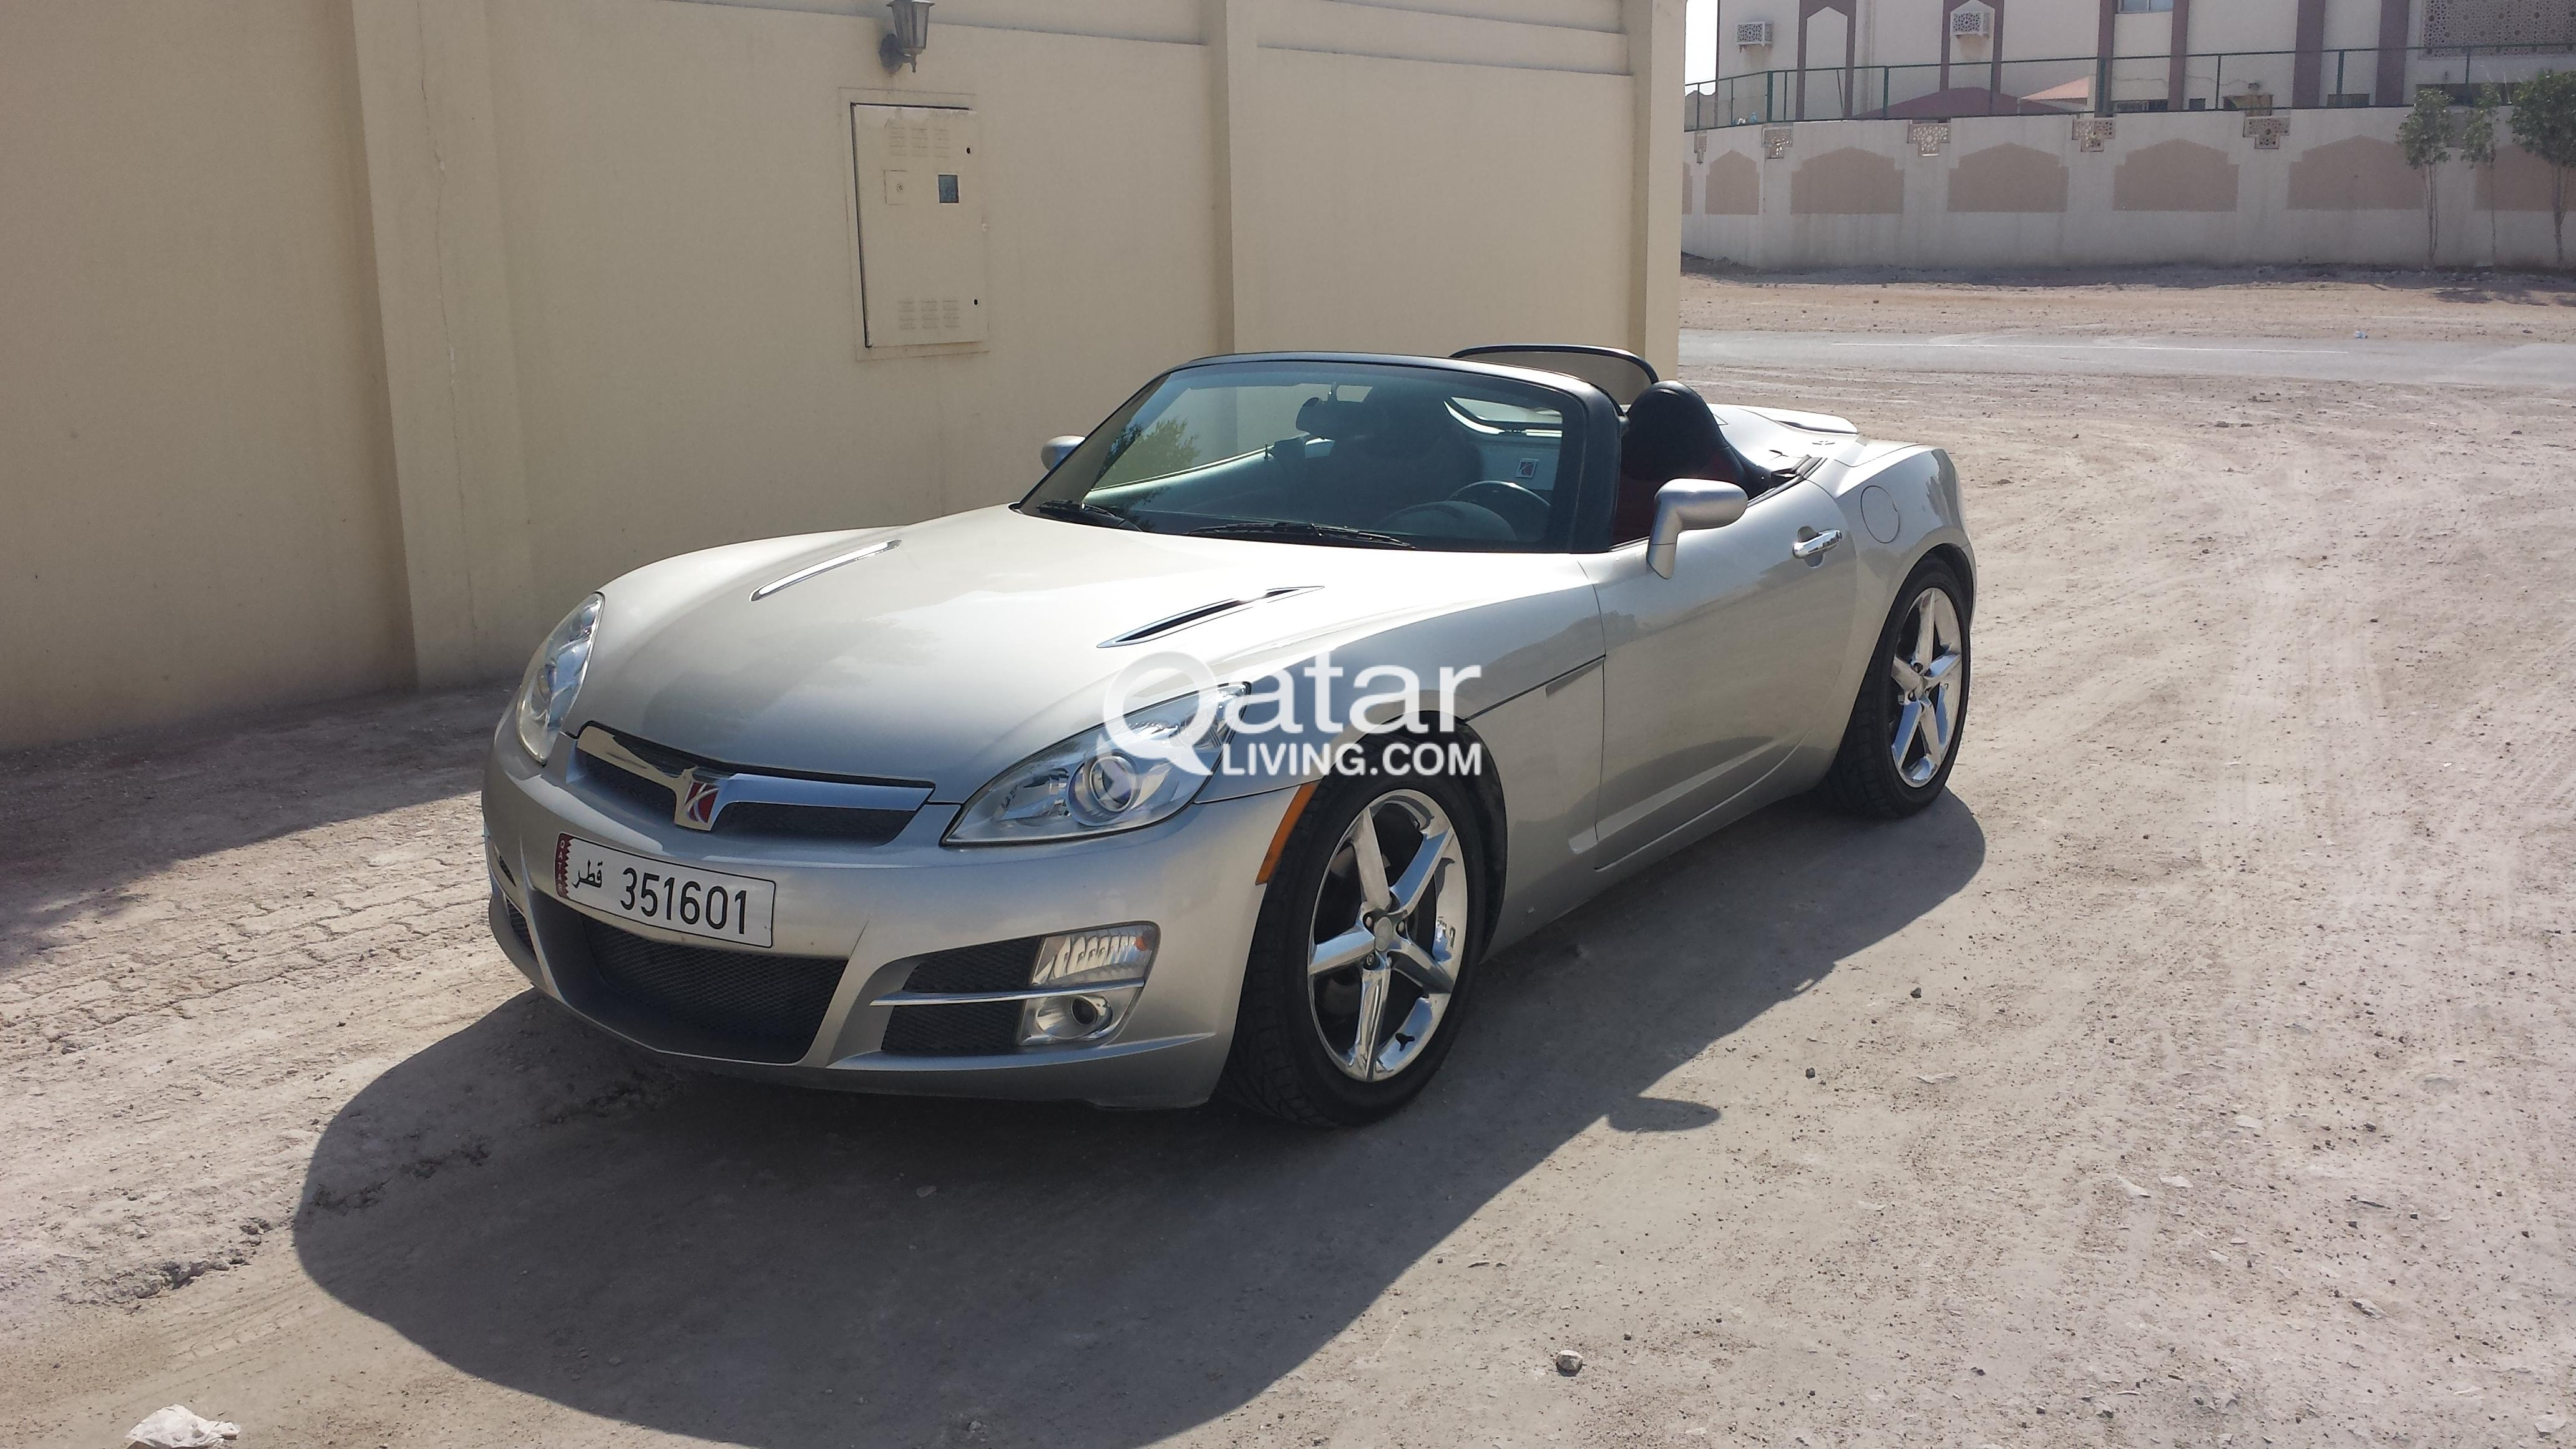 Very rare car for sale (only 1 of 1 in Qatar)   Qatar Living